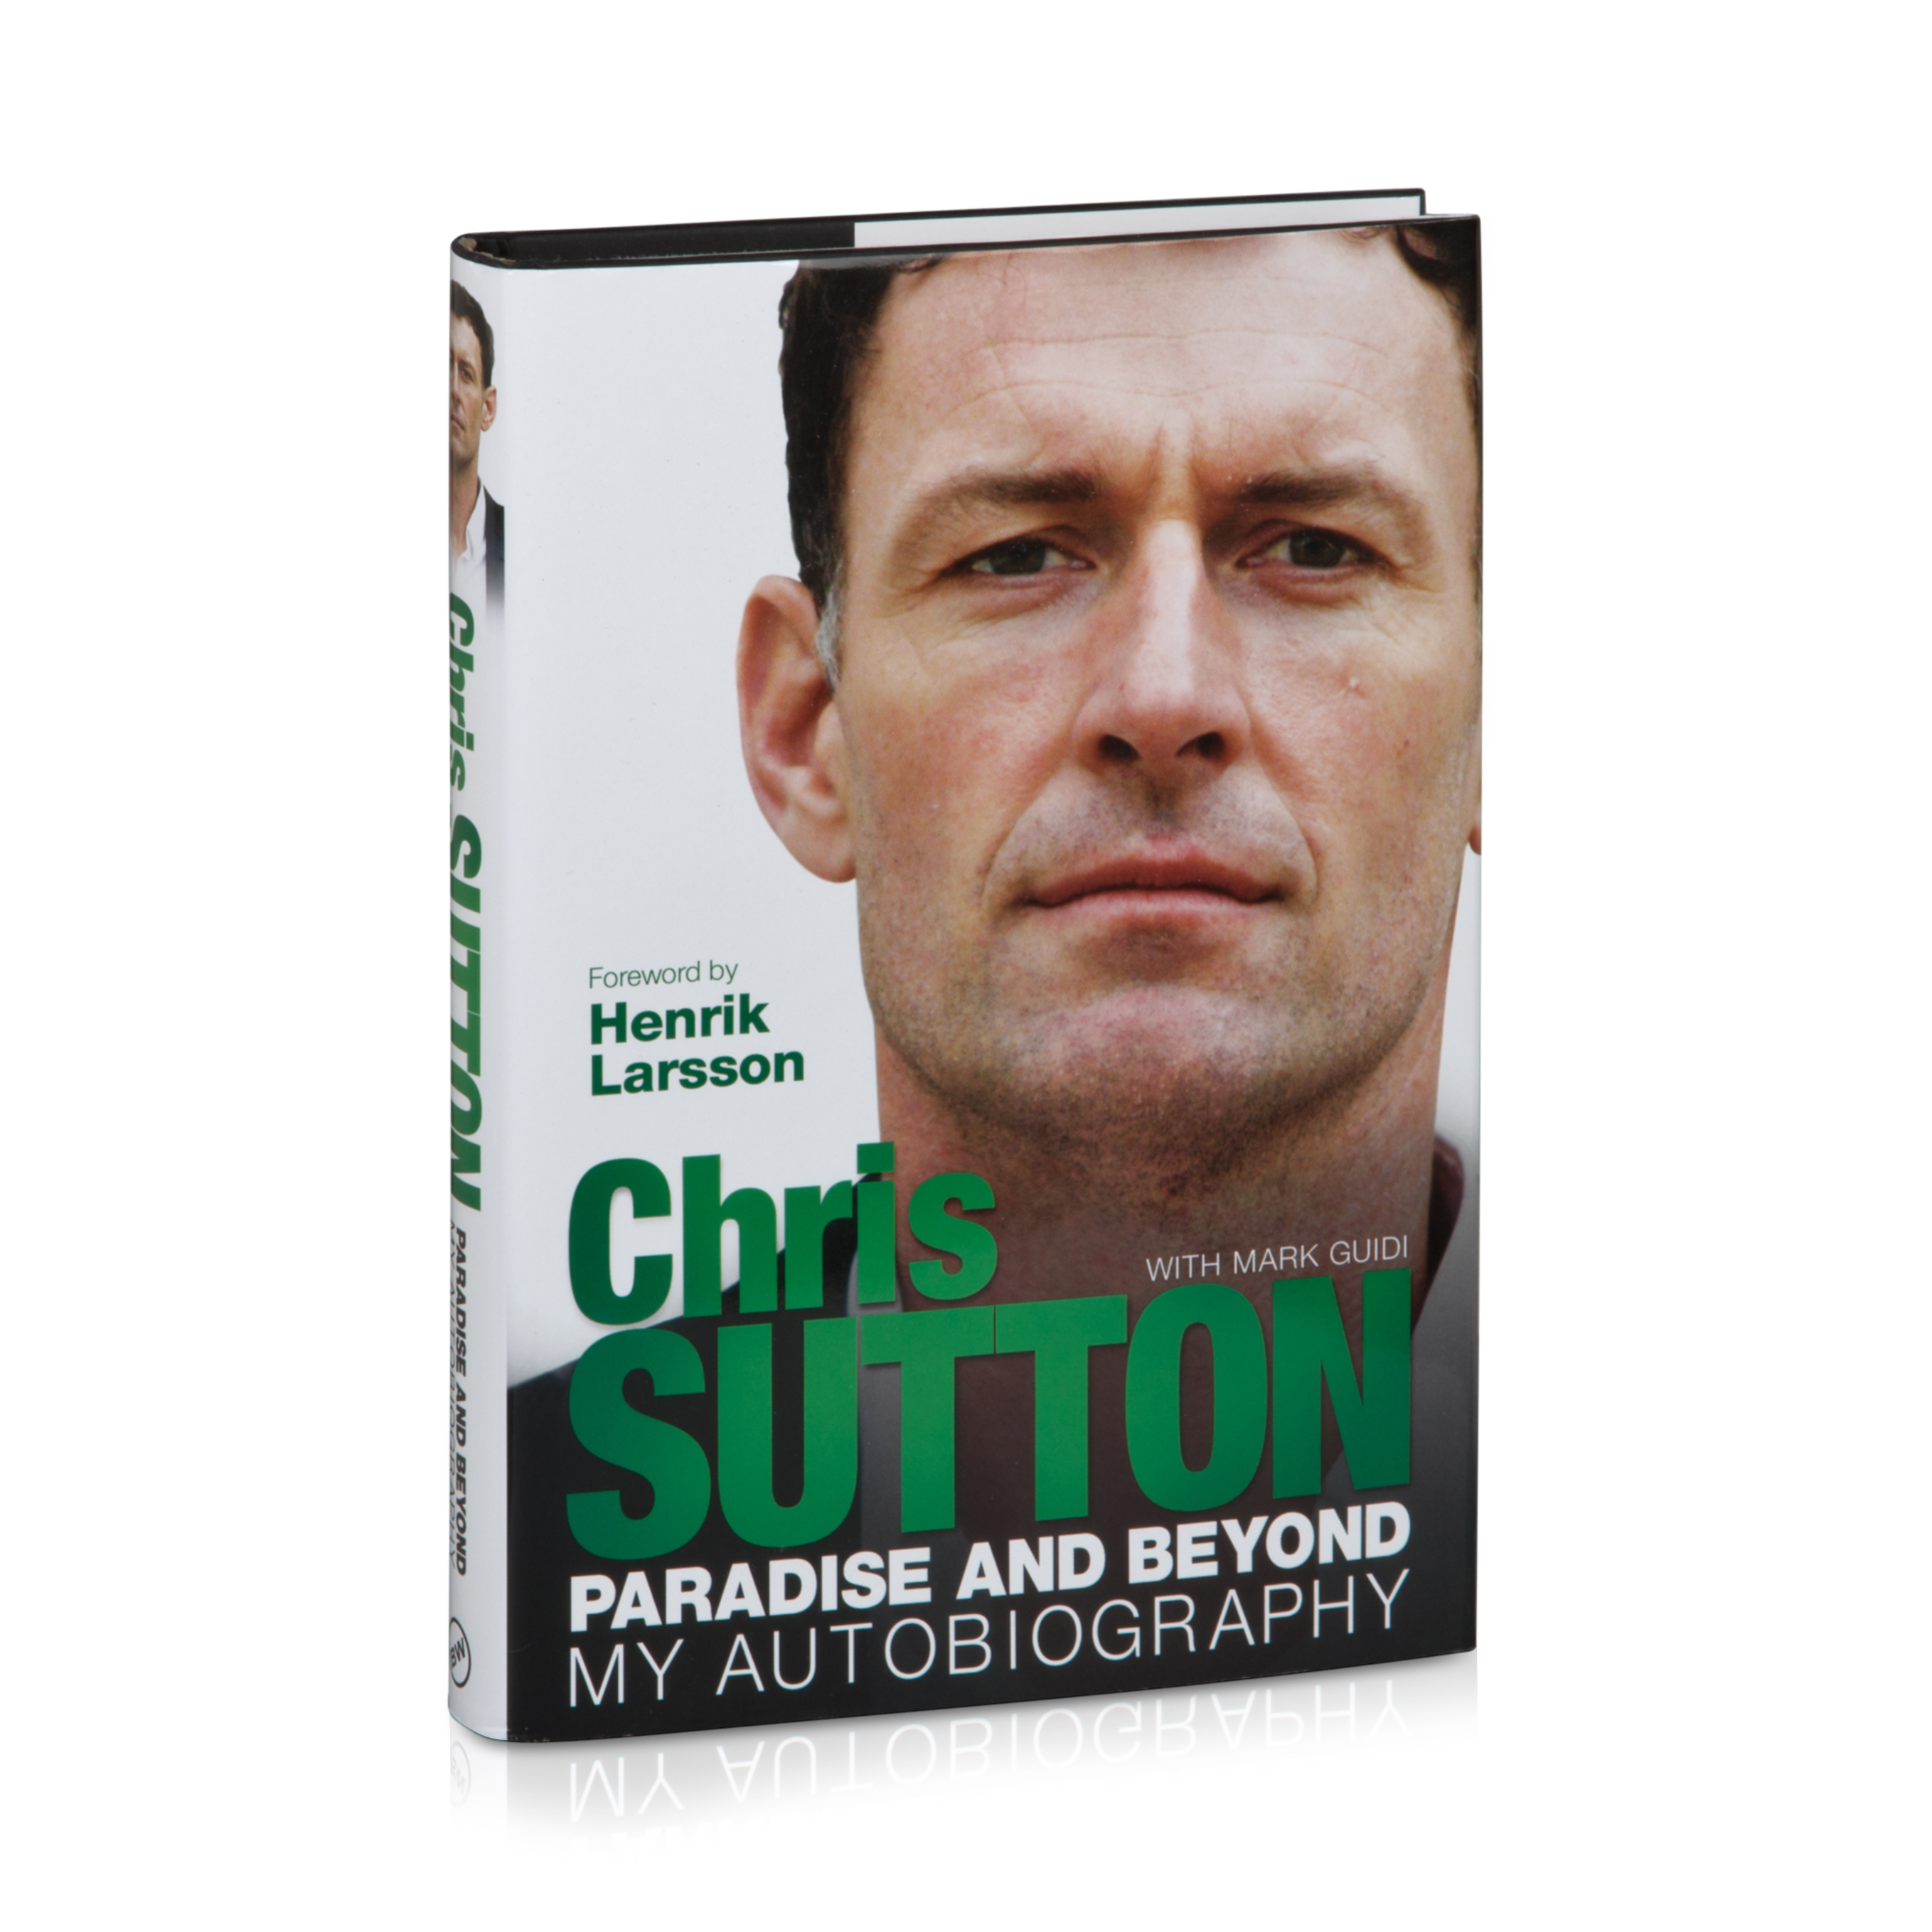 Celtic Sutton Autobiography